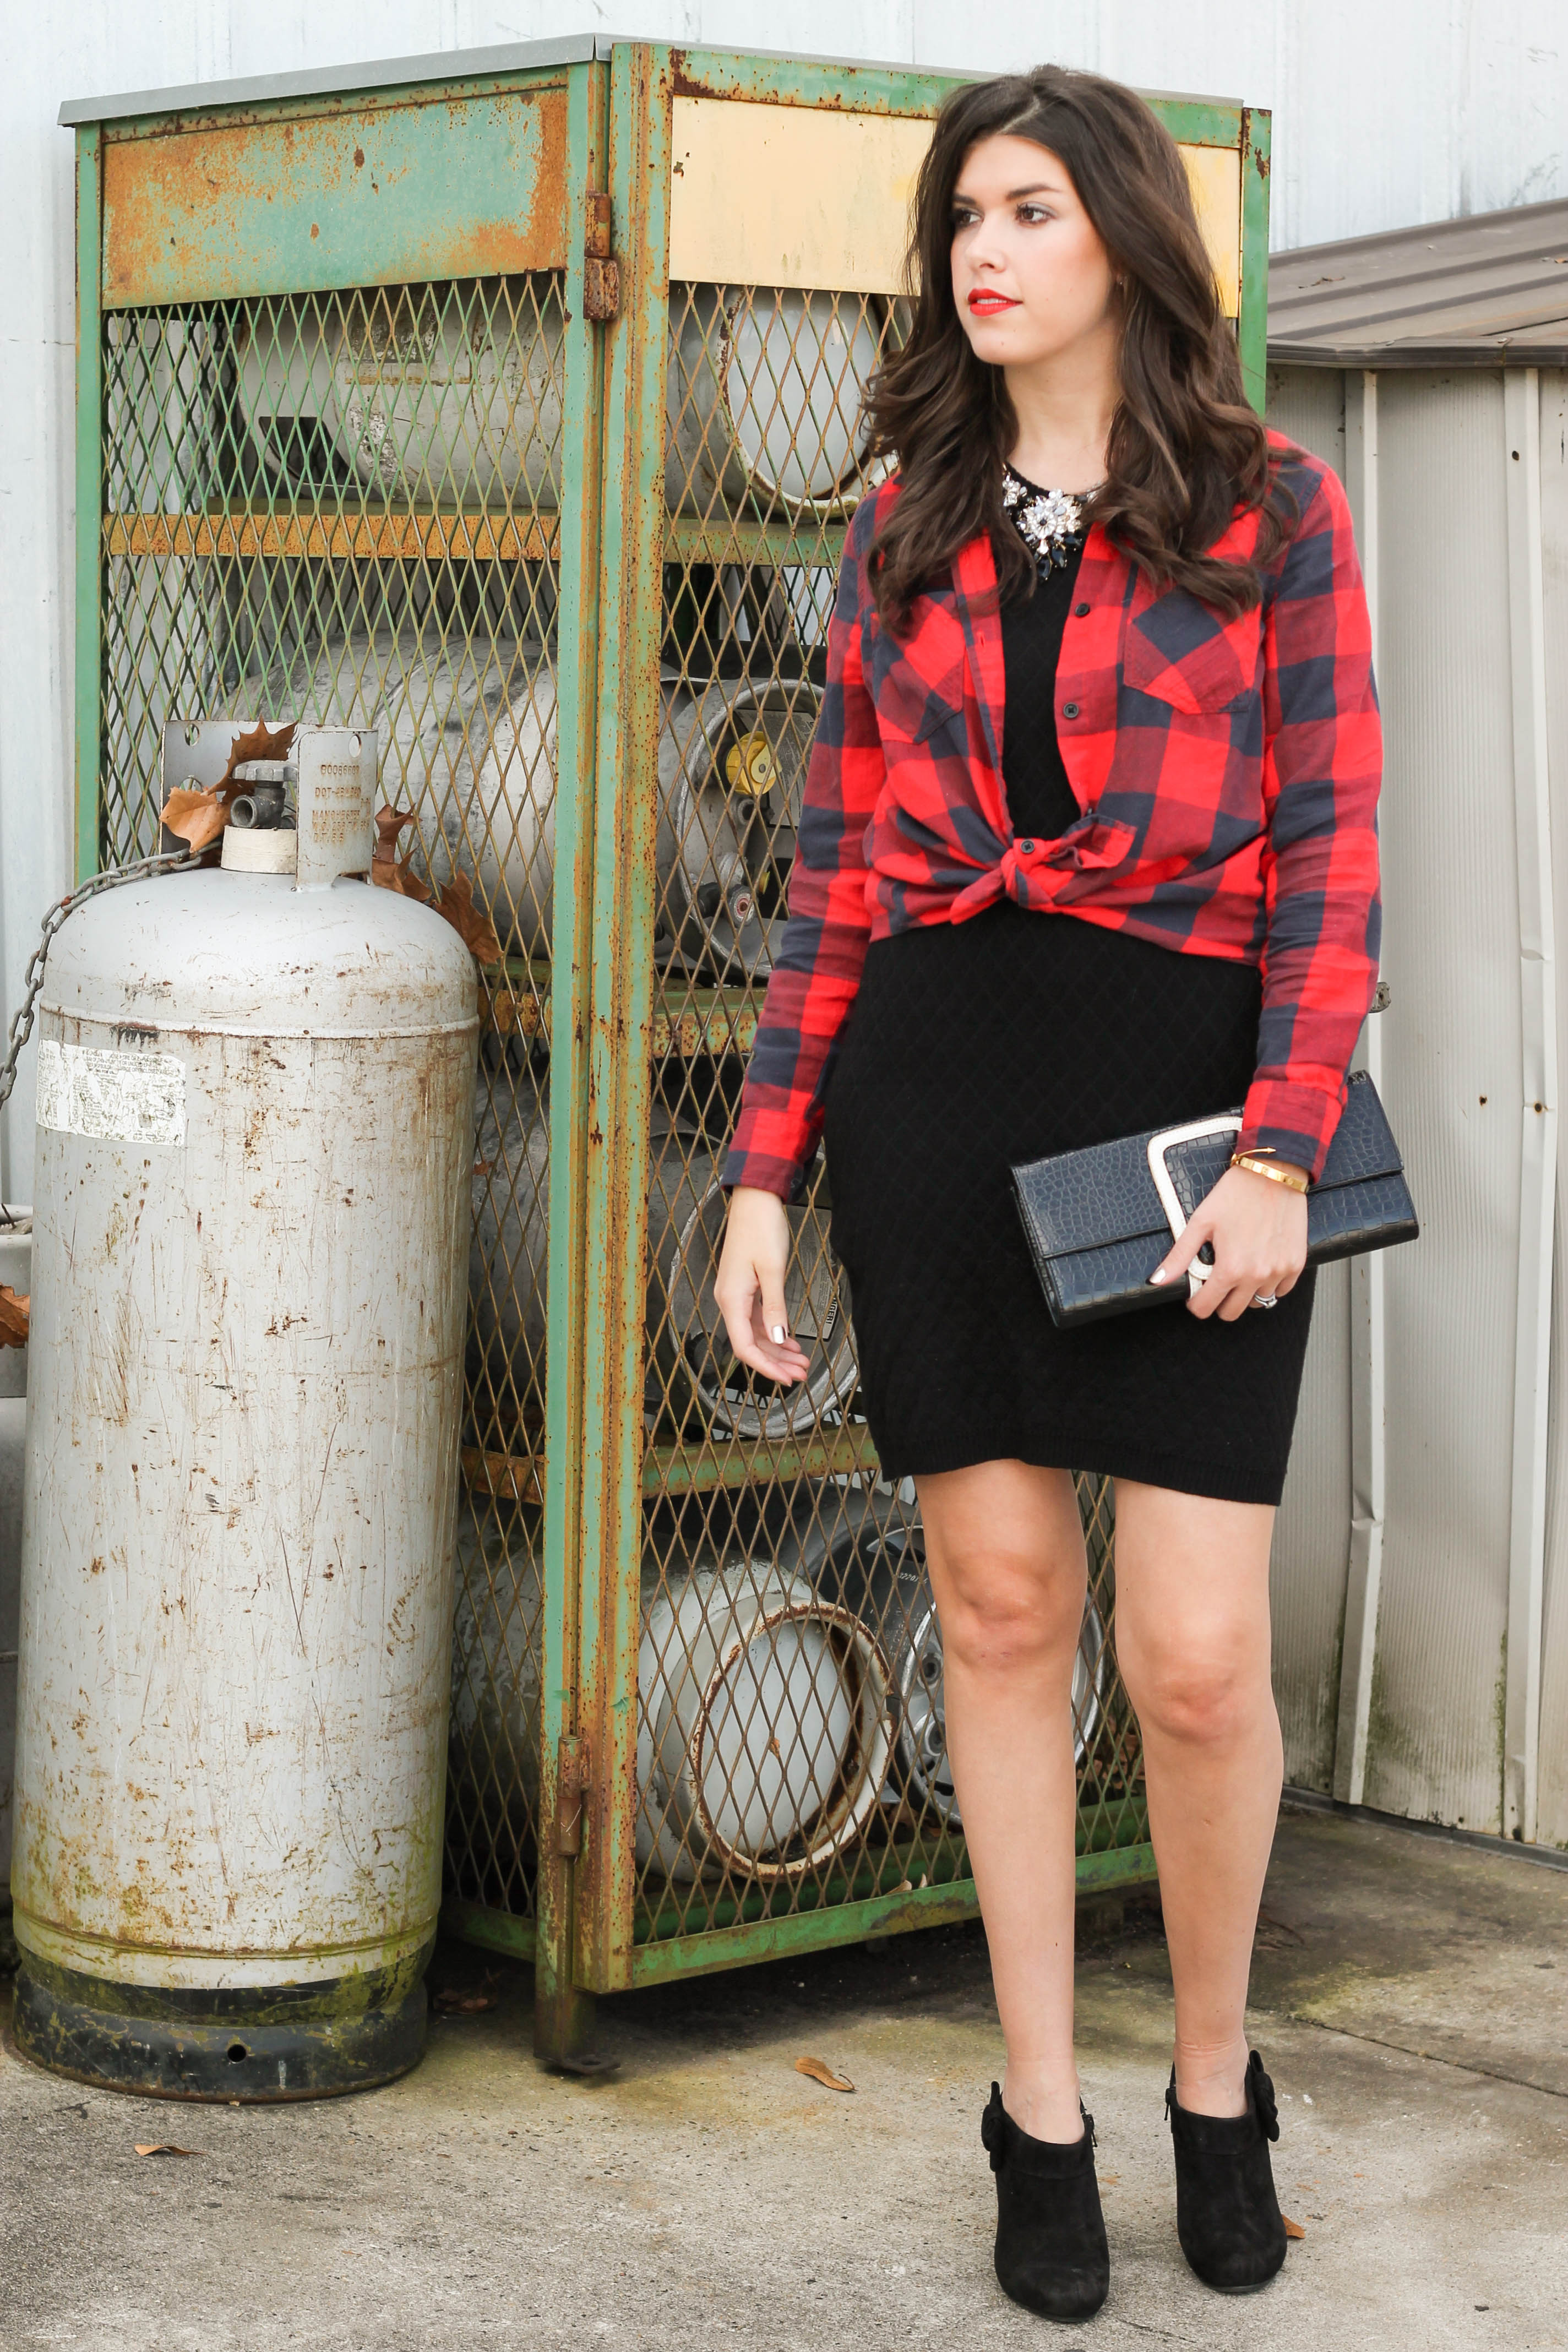 2015-12-06 13.29.25 - Holiday Glam + Buffalo Red Plaid Shirt by New York fashion blogger